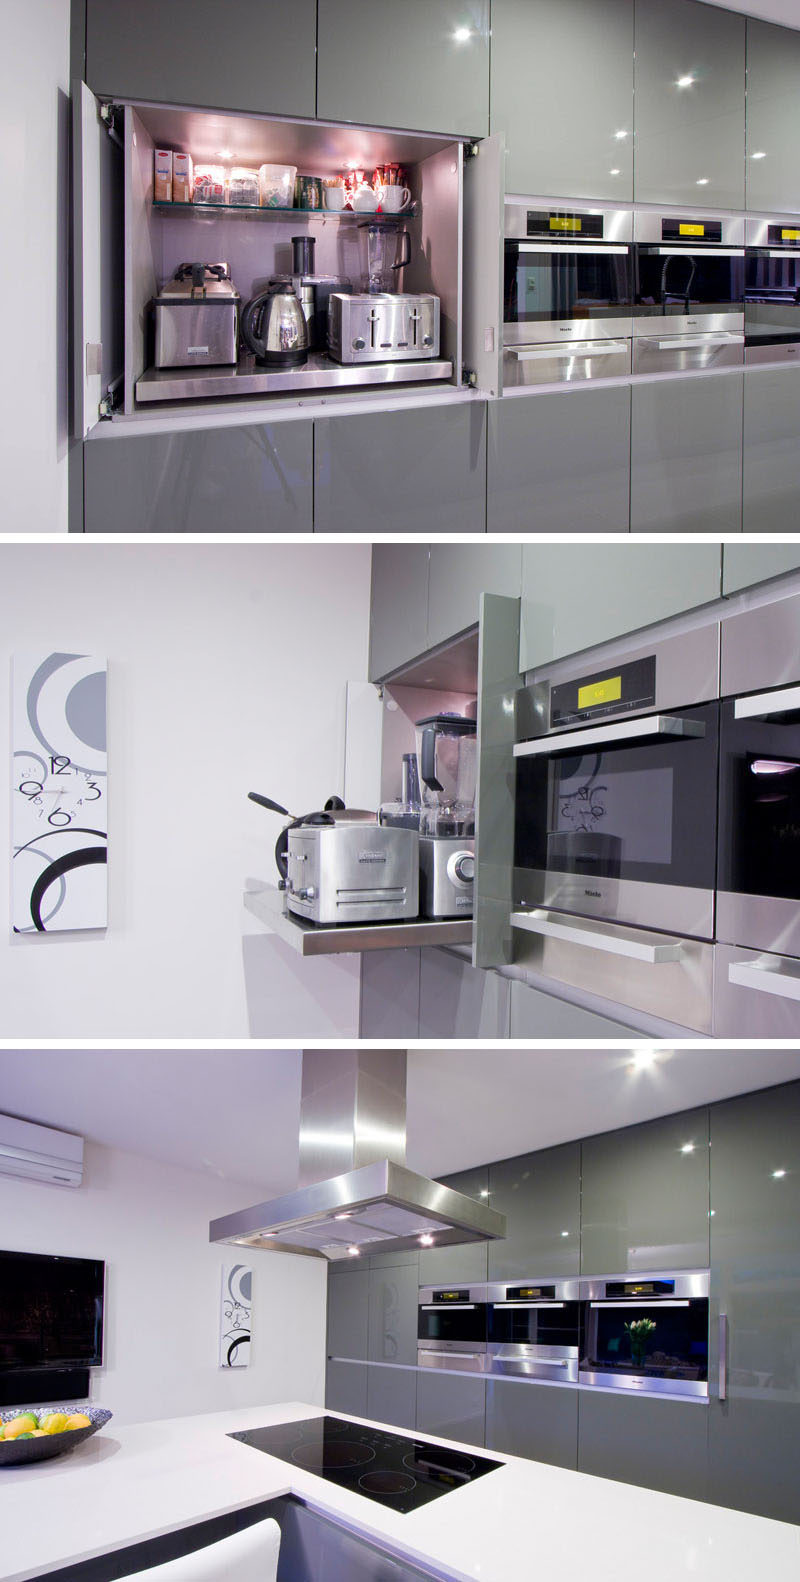 Kitchen Design Idea - Store Your Kitchen Appliances In A Dedicated Appliance Garage // The main shelf of this appliance garage pulls out to make it easier to access the appliances stored at the back.  #ApplianceGarage #KitchenIdeas #KitchenDesign